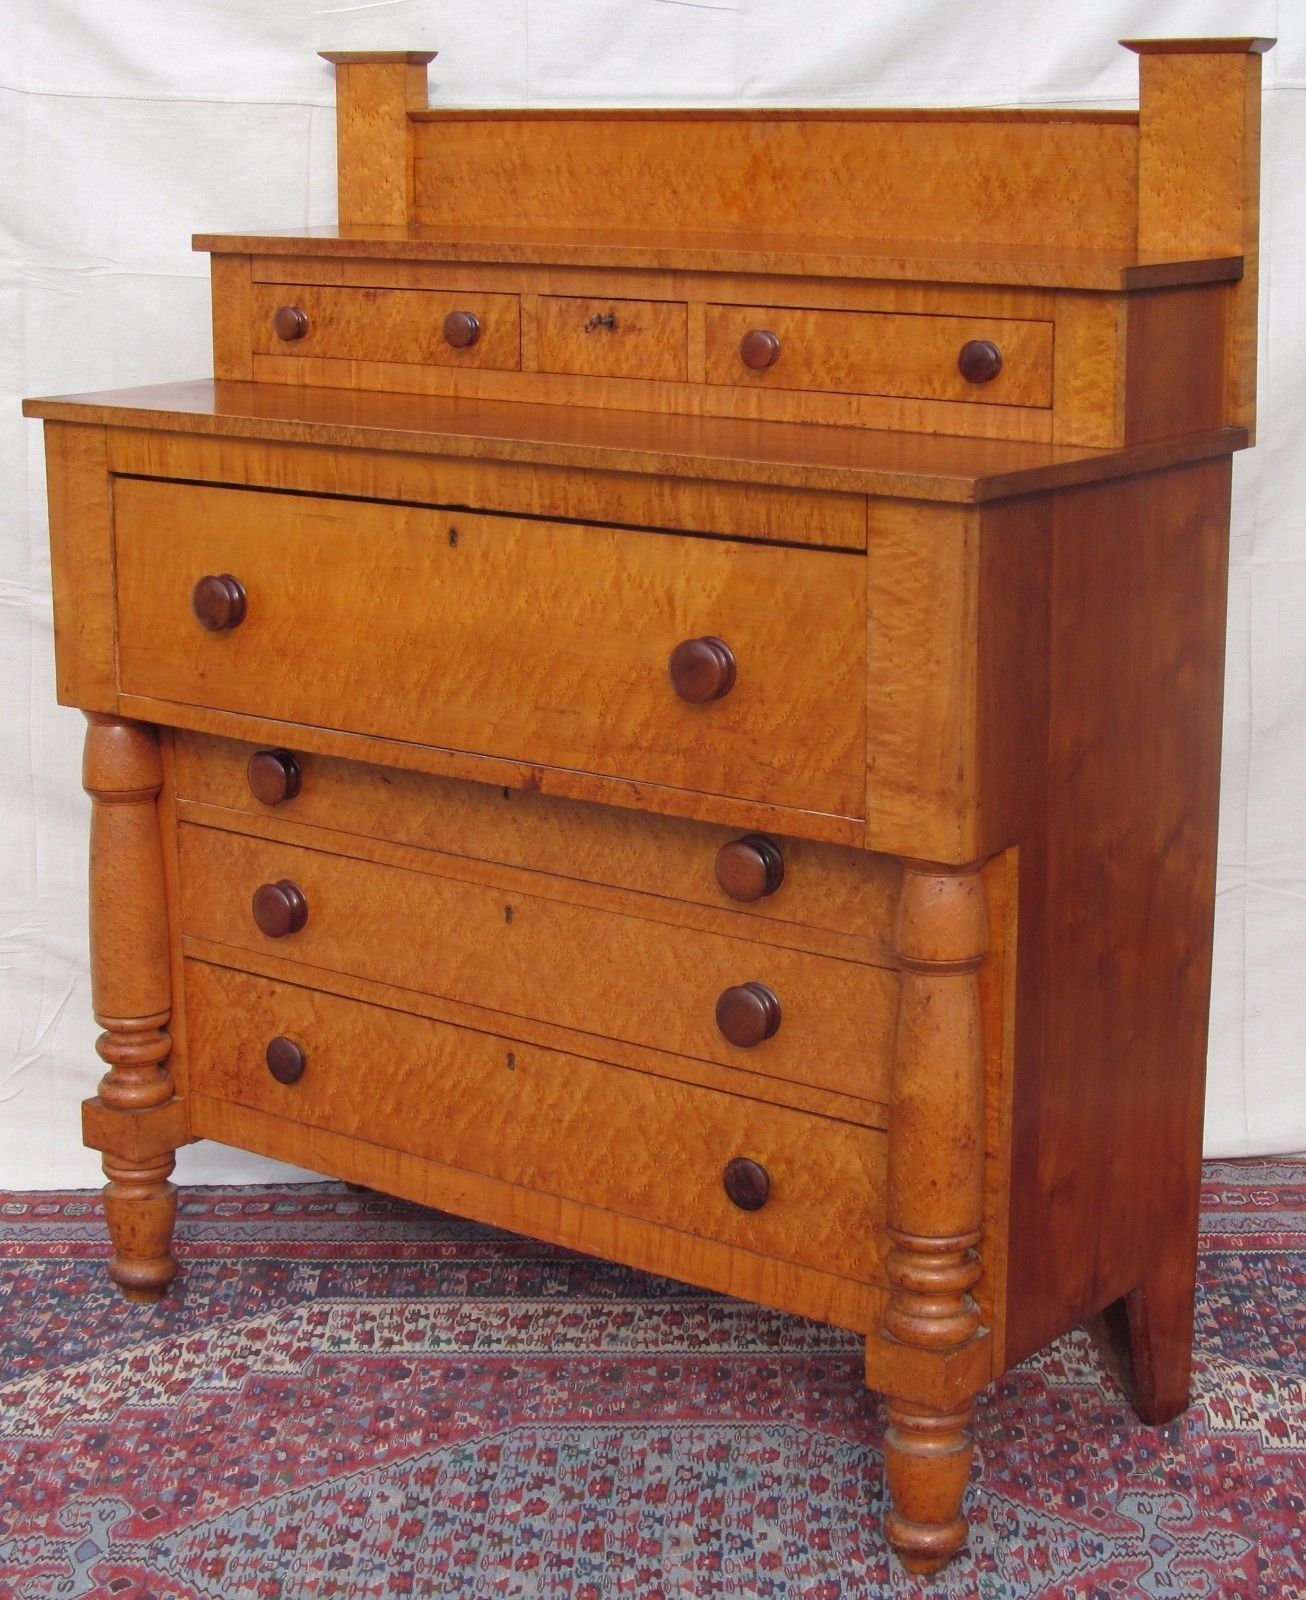 craftsmanship wood items dresser fullxfull maple early sold american solid shop il